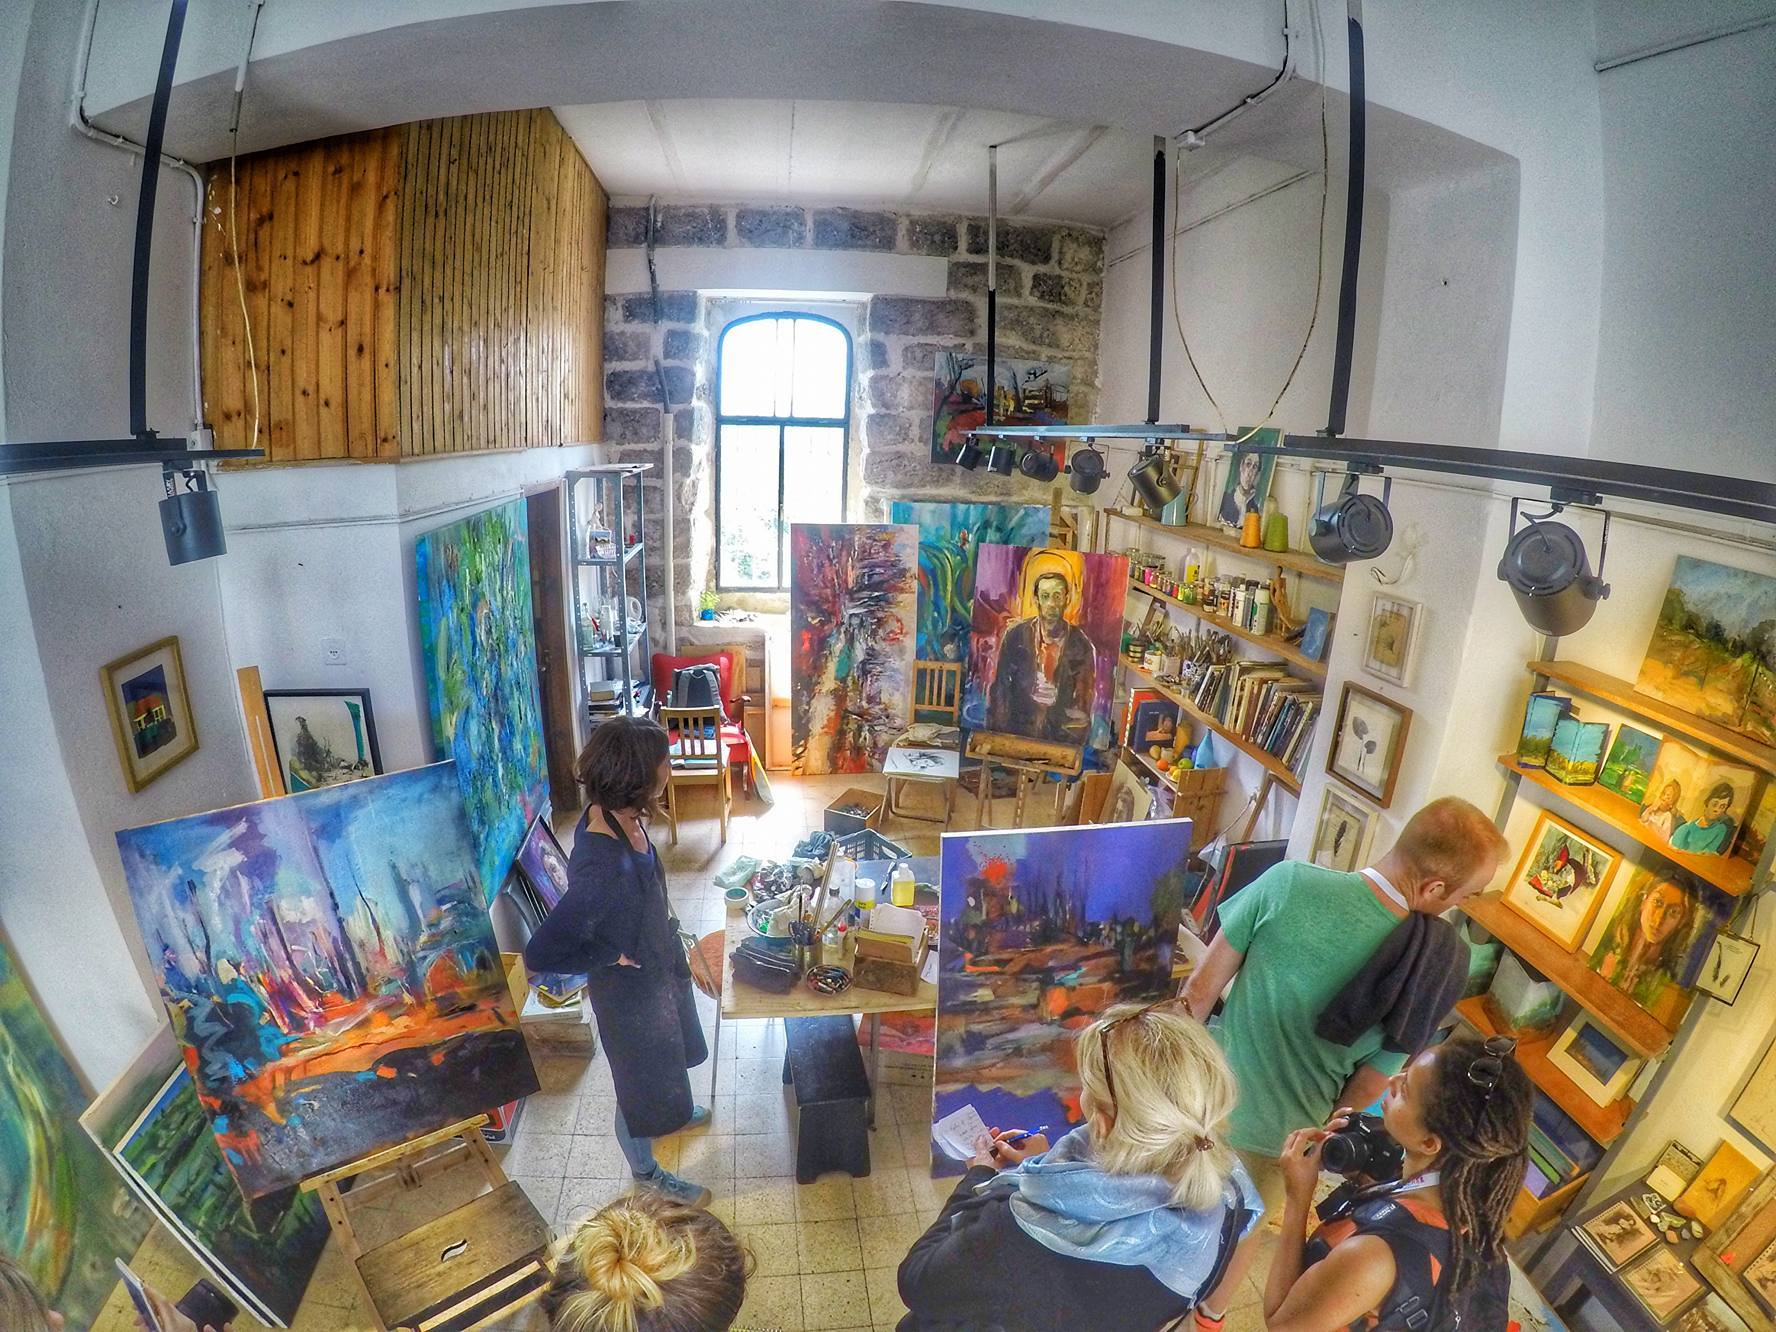 Mamilla Art Studios - What to see in Israel